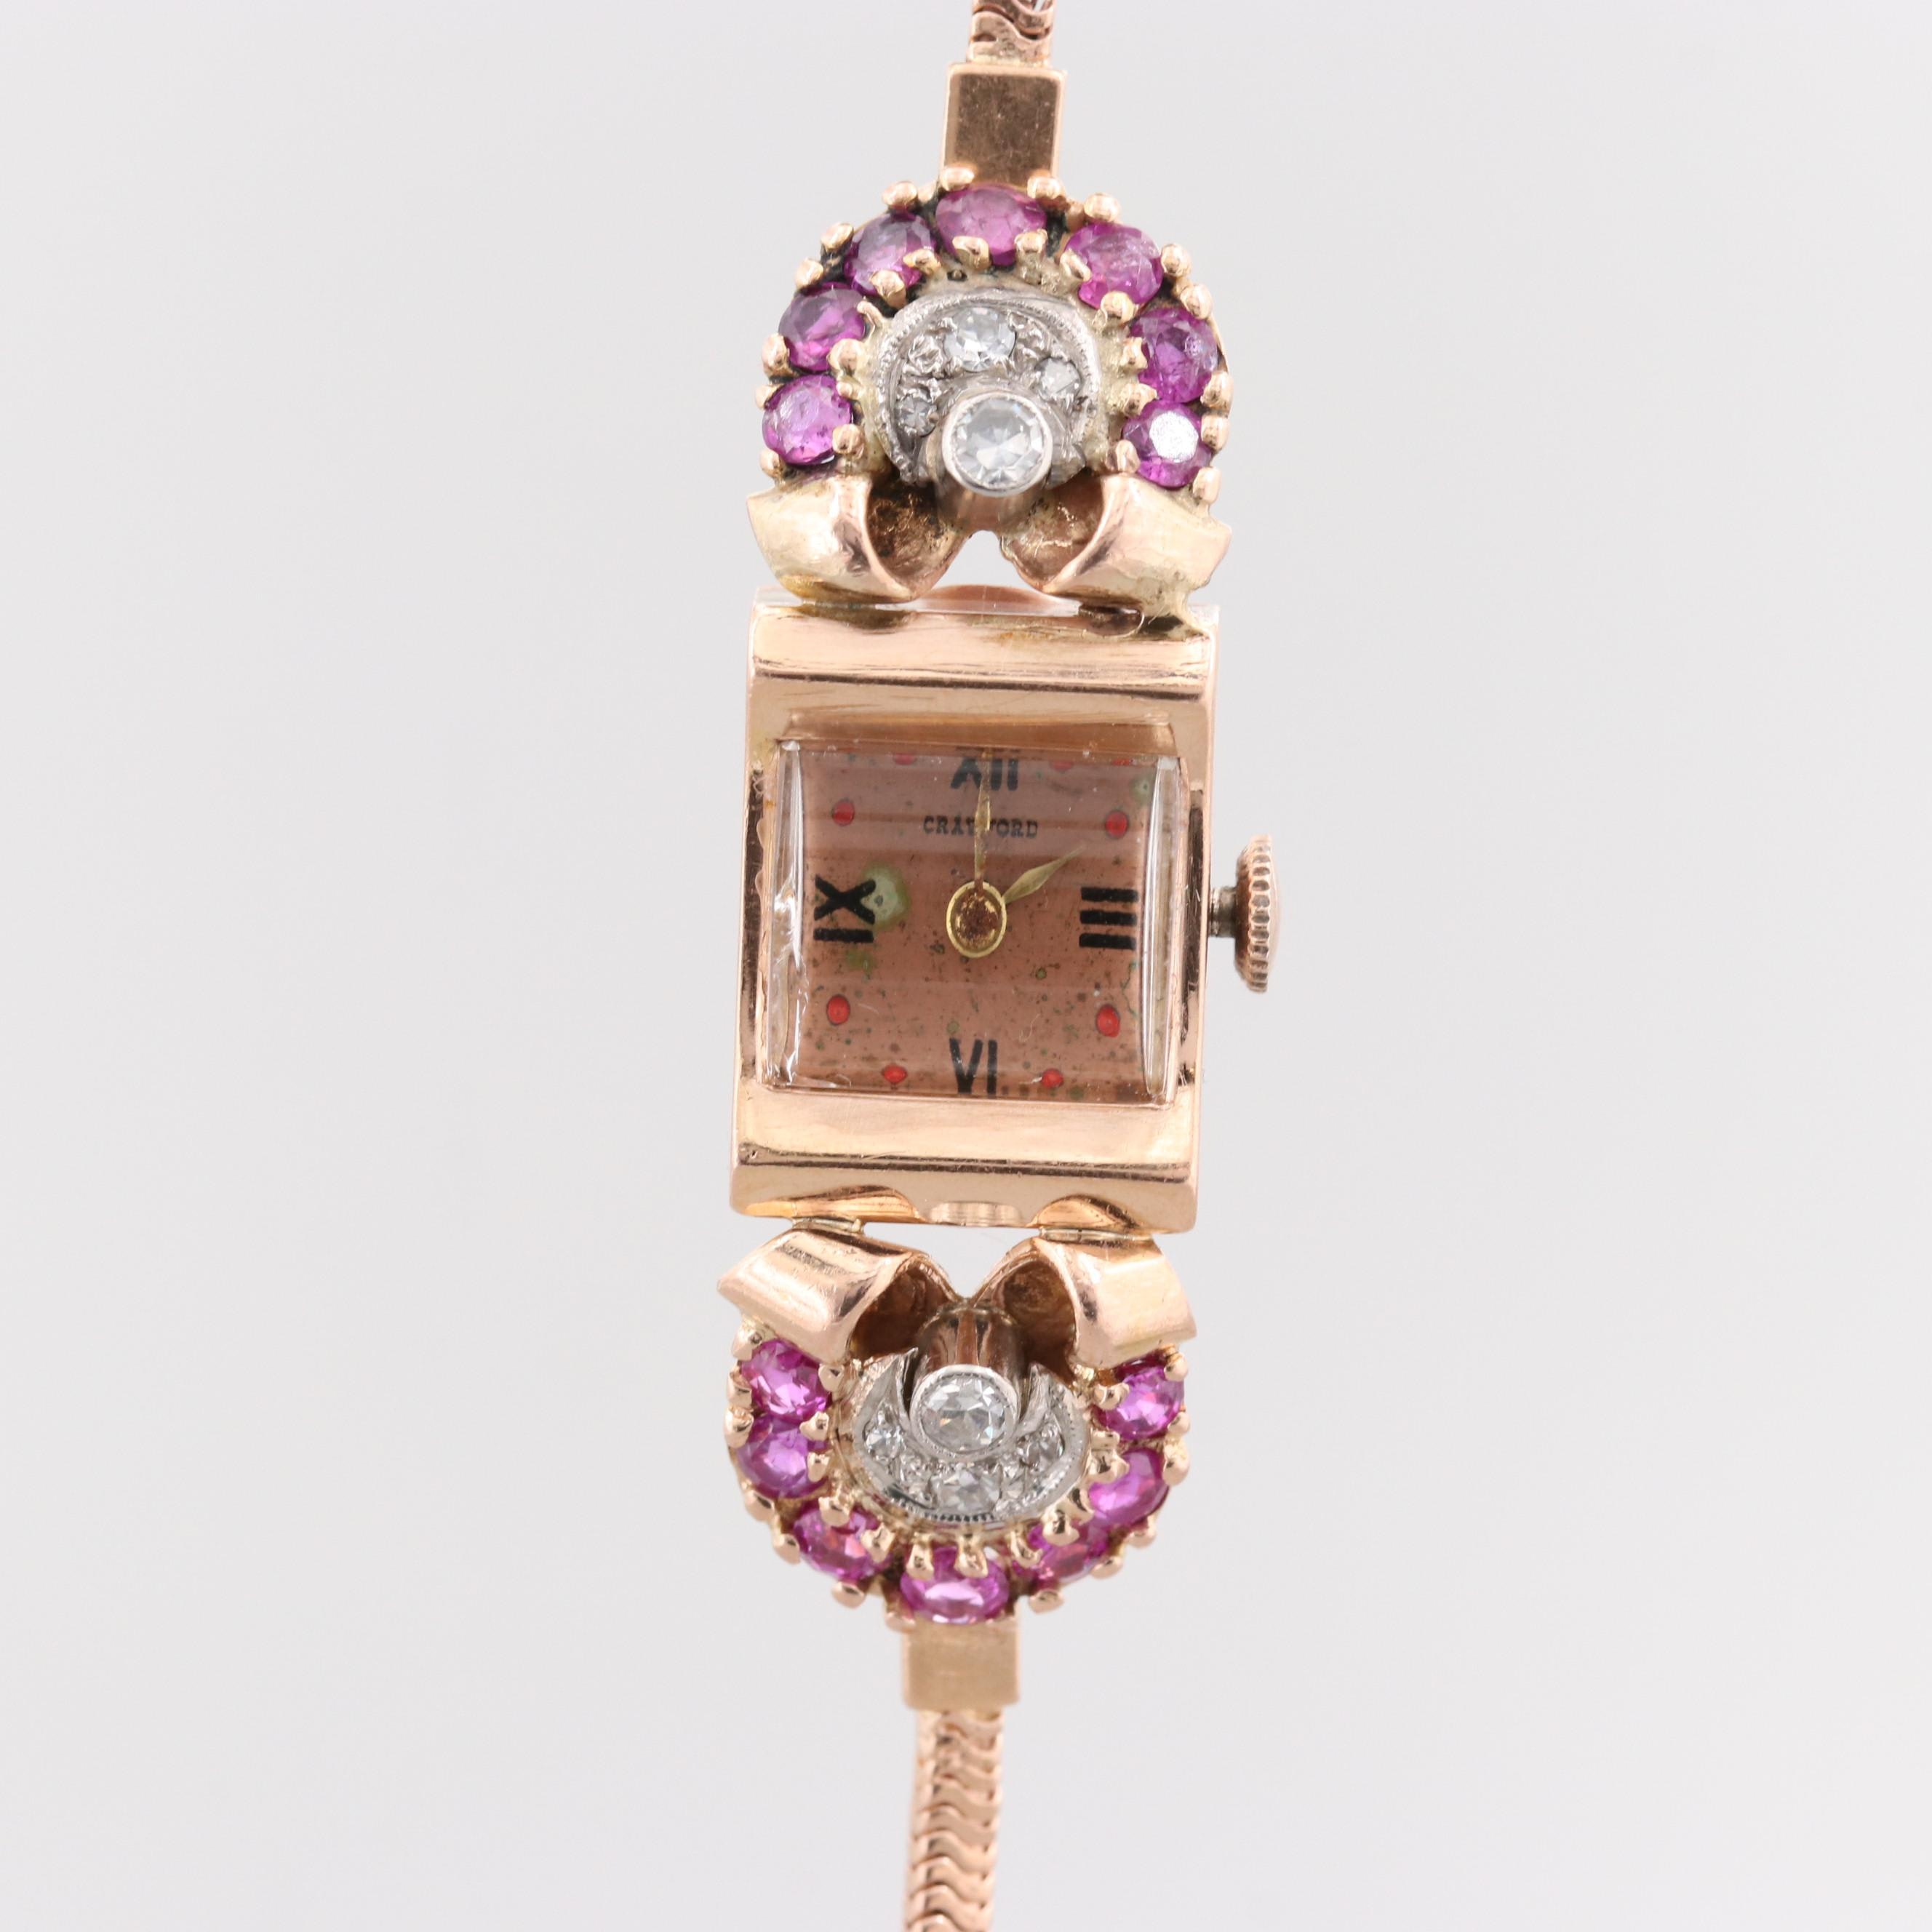 Vintage Crawford 14K Rose Gold Stem Wind Wristwatch With Diamond and Ruby Lugs